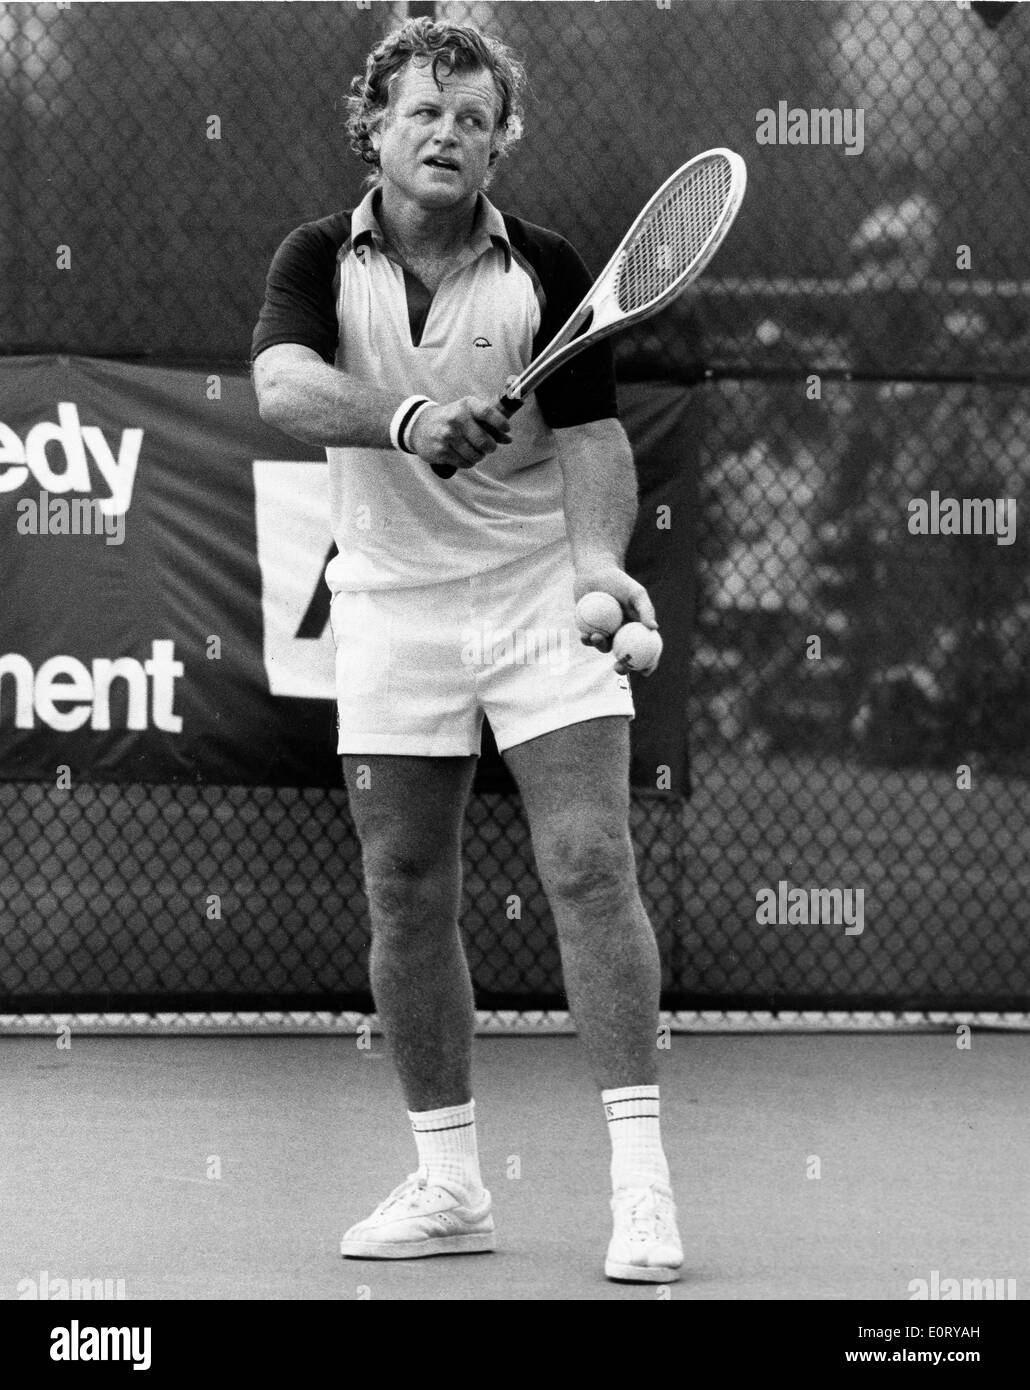 Edward Kennedy plays in RFK tennis tournament - Stock Image